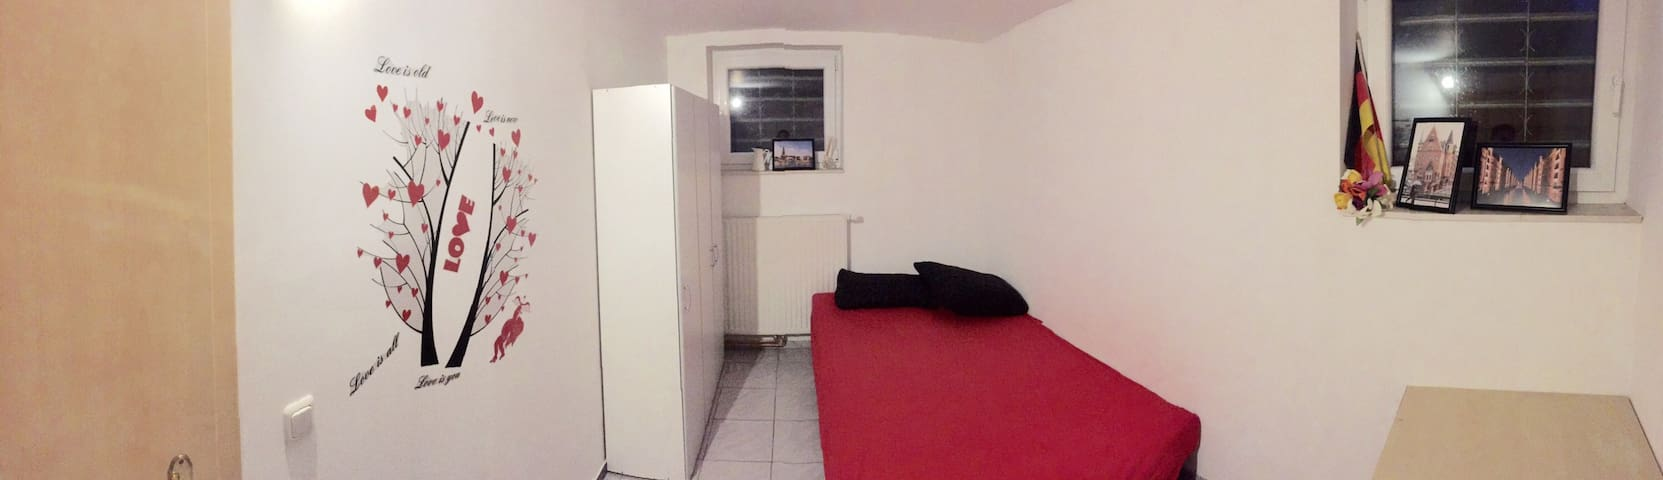 Simple-Room for 2 in Billstedt